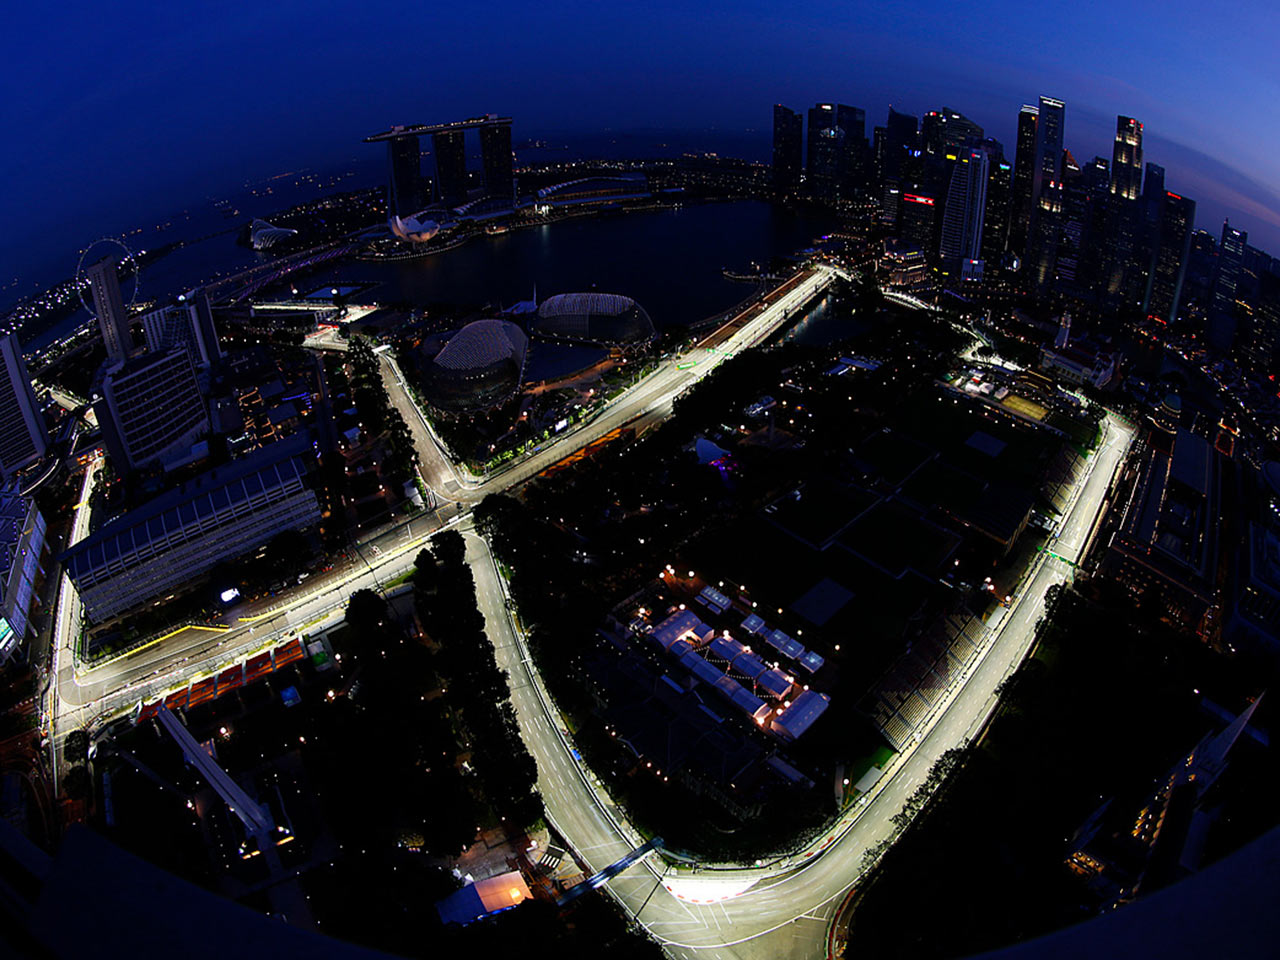 Singapore F1 aerial view